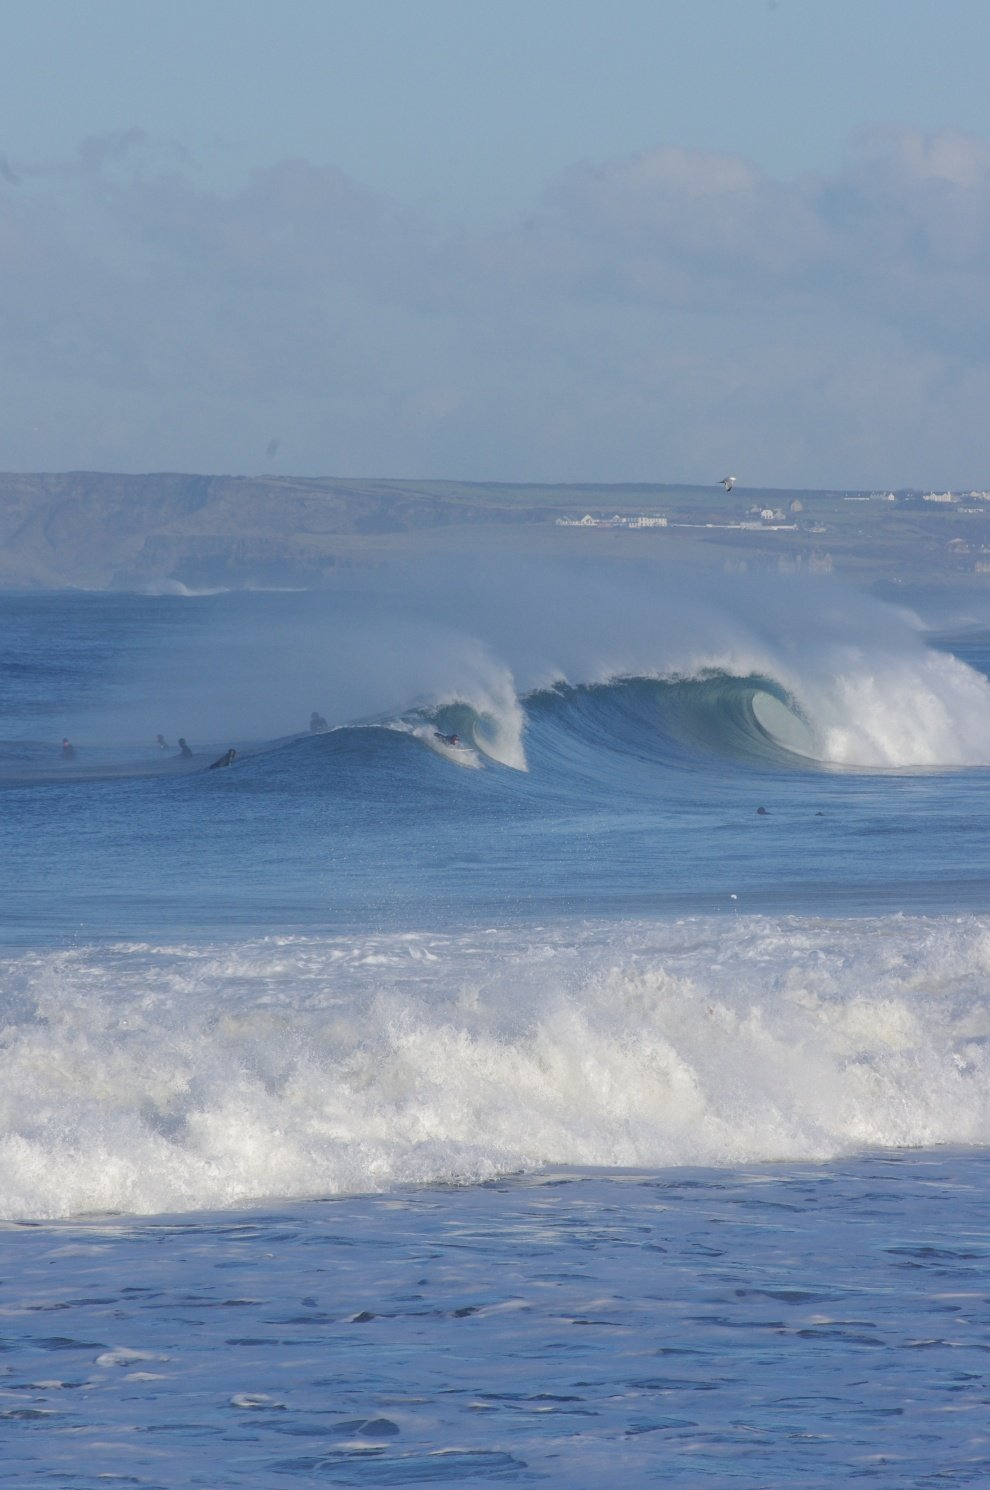 surftweetuk.com's photo of Portrush